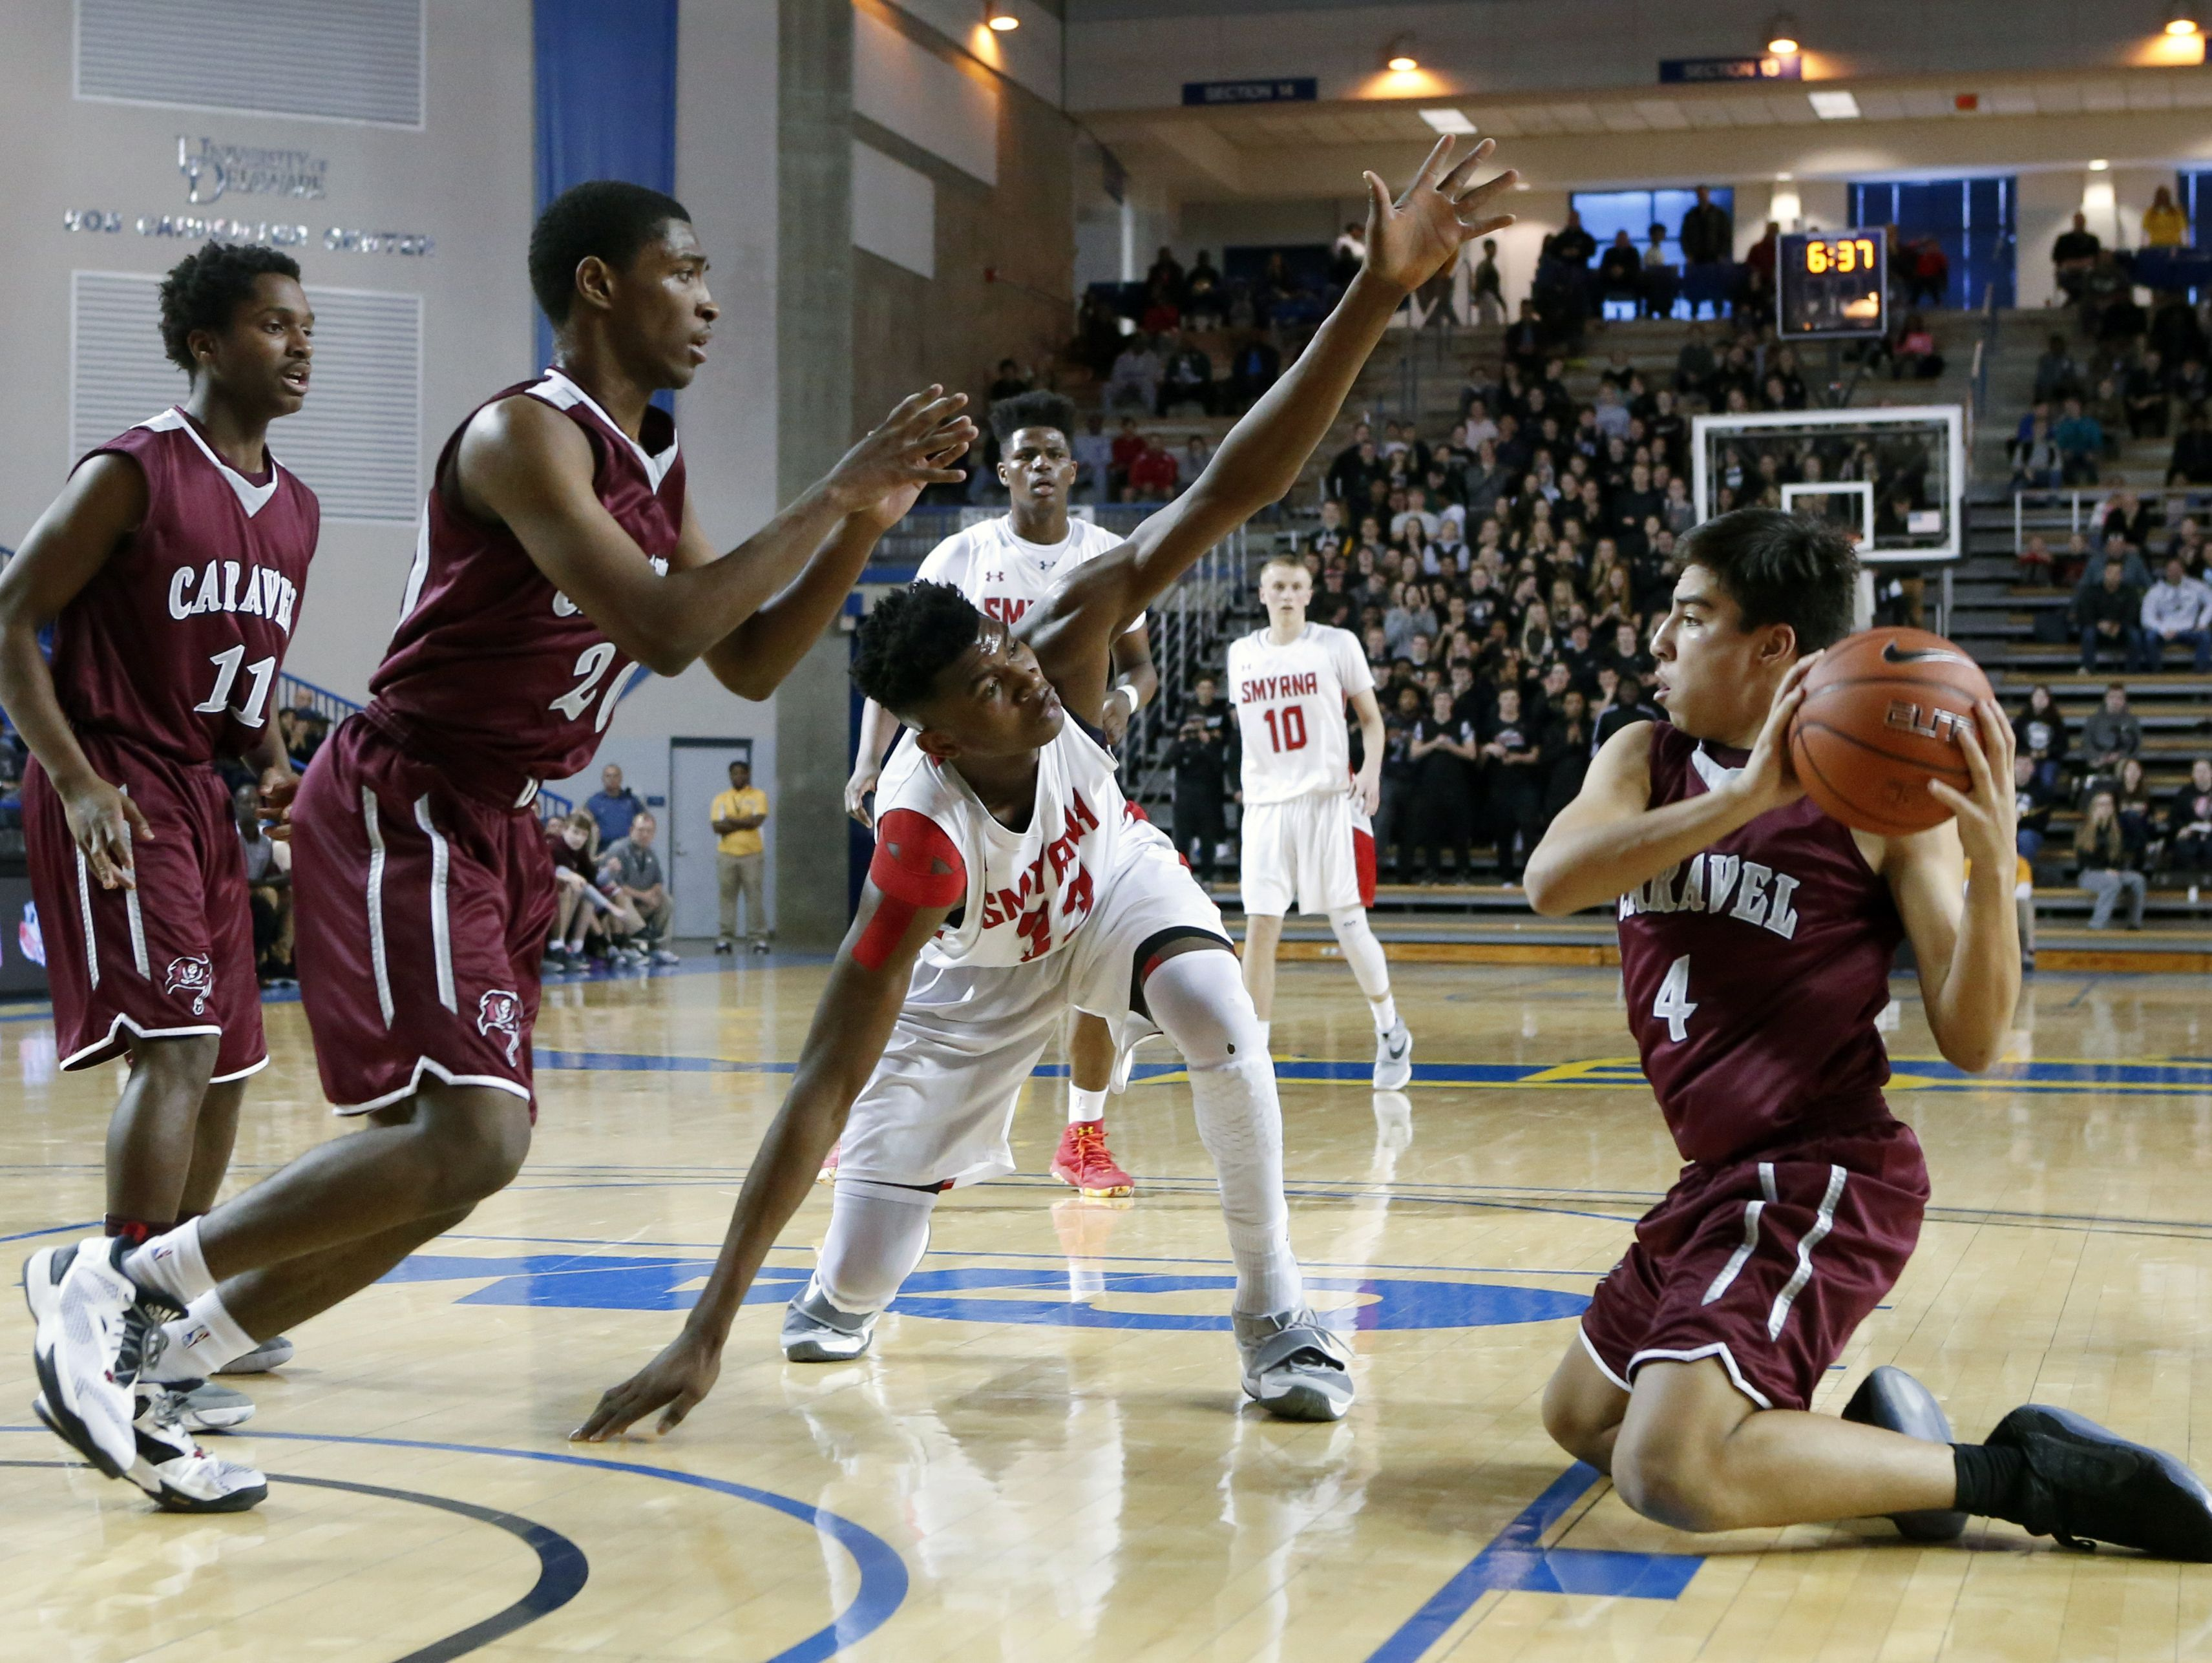 Caravel's Brandon Sengphachanh snags a loose ball in front of Smyrna's Zubi Nwankwo and teammates Mandela Montgomery (left) and Trevon Alderman in the second half of the Eagles' 61-53 win in the DIAA state tournament title game at the Bob Carpenter Center Saturday.